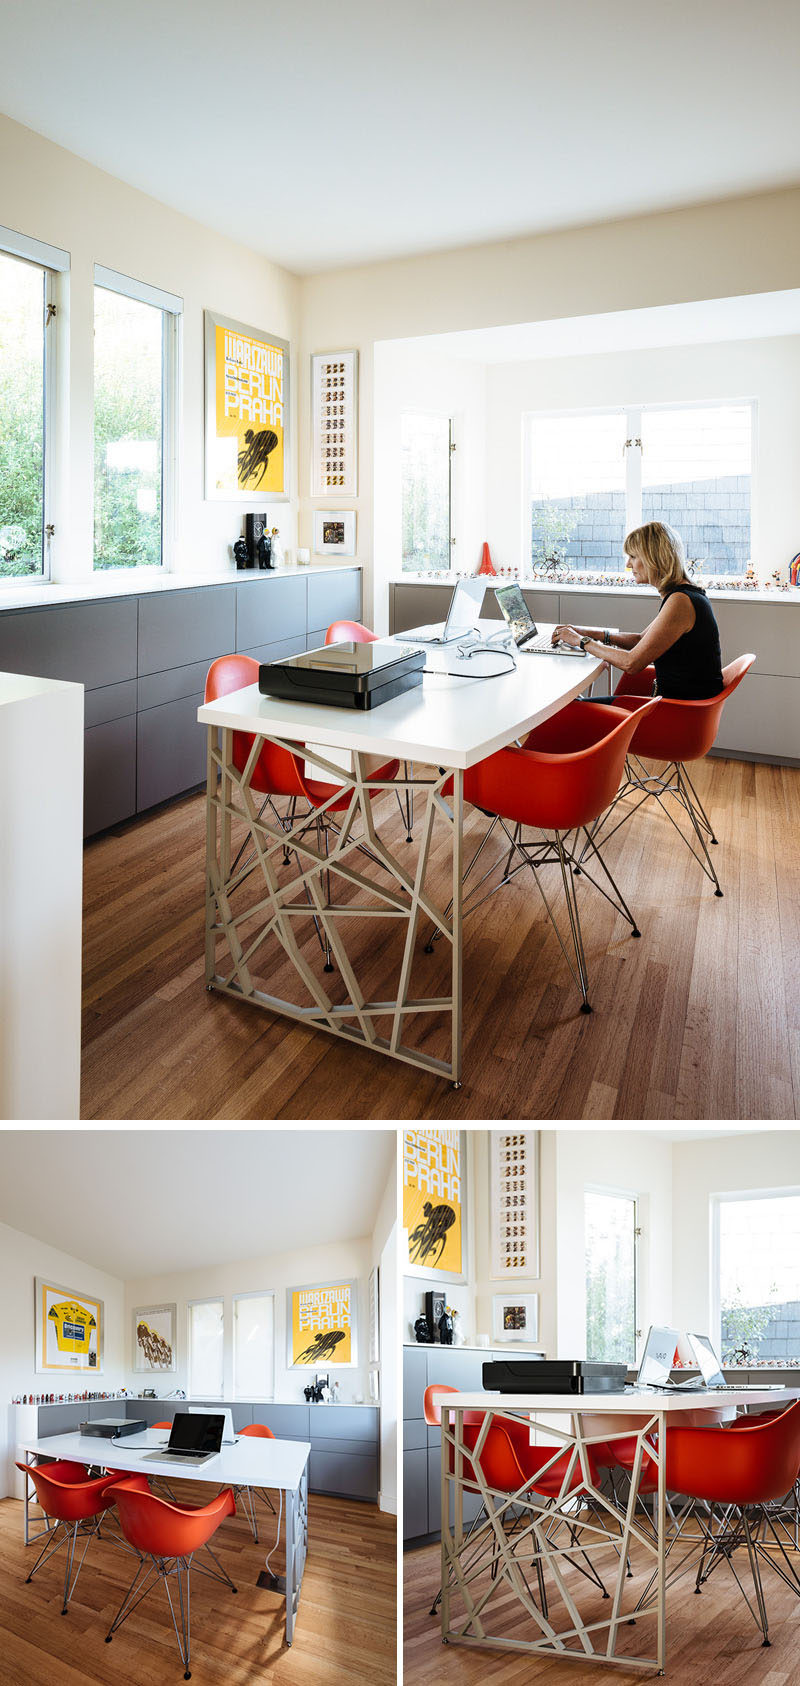 This modern home office has been designed with the desk in the middle of the room, while cabinets line the lower half of the wall. #ModernHomeOffice